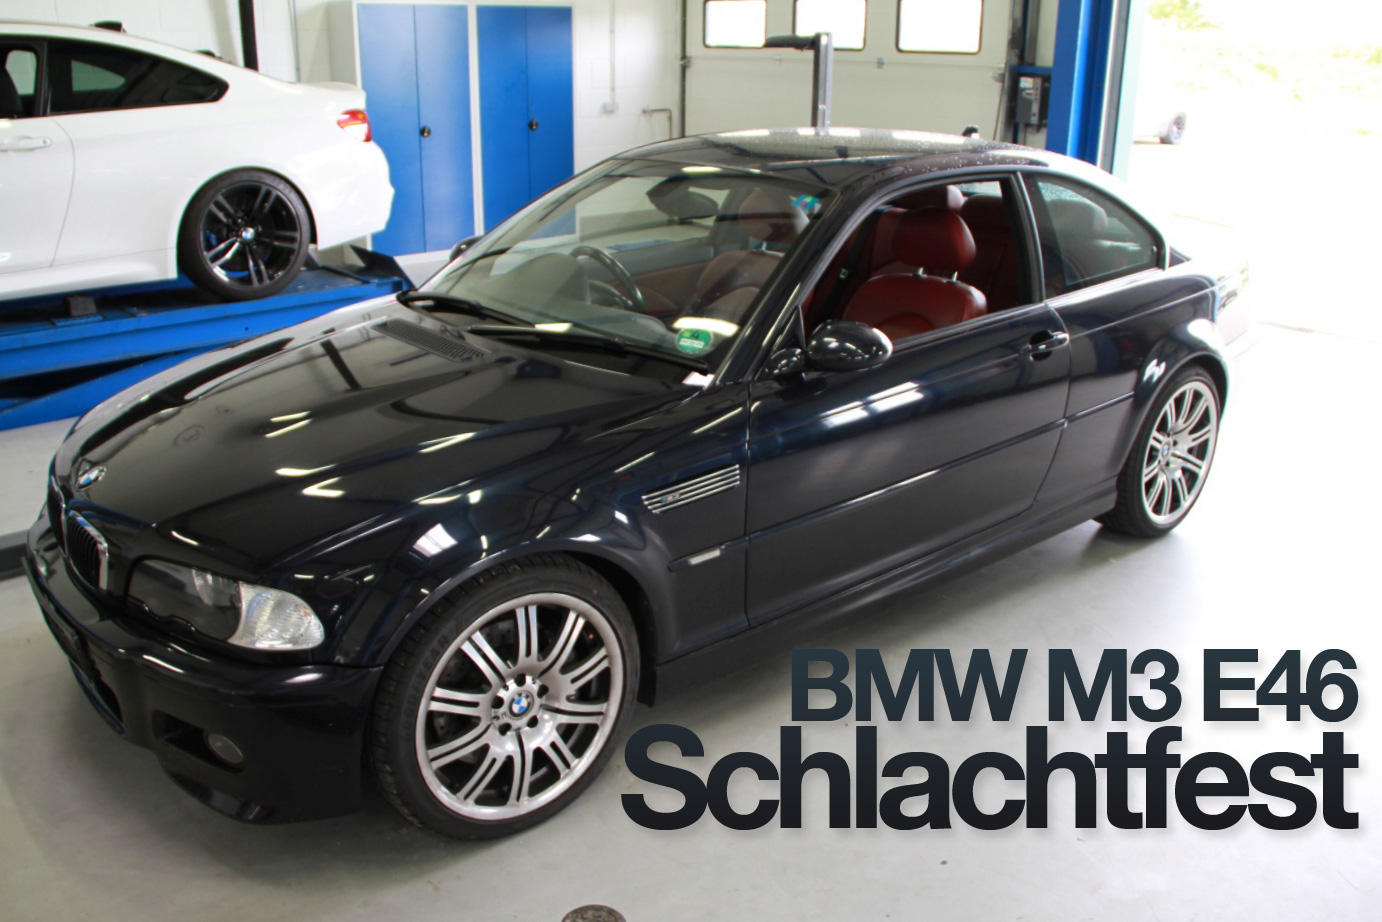 bmw m3 e46 schlachtfest noch alle teile vorhanden bmw. Black Bedroom Furniture Sets. Home Design Ideas